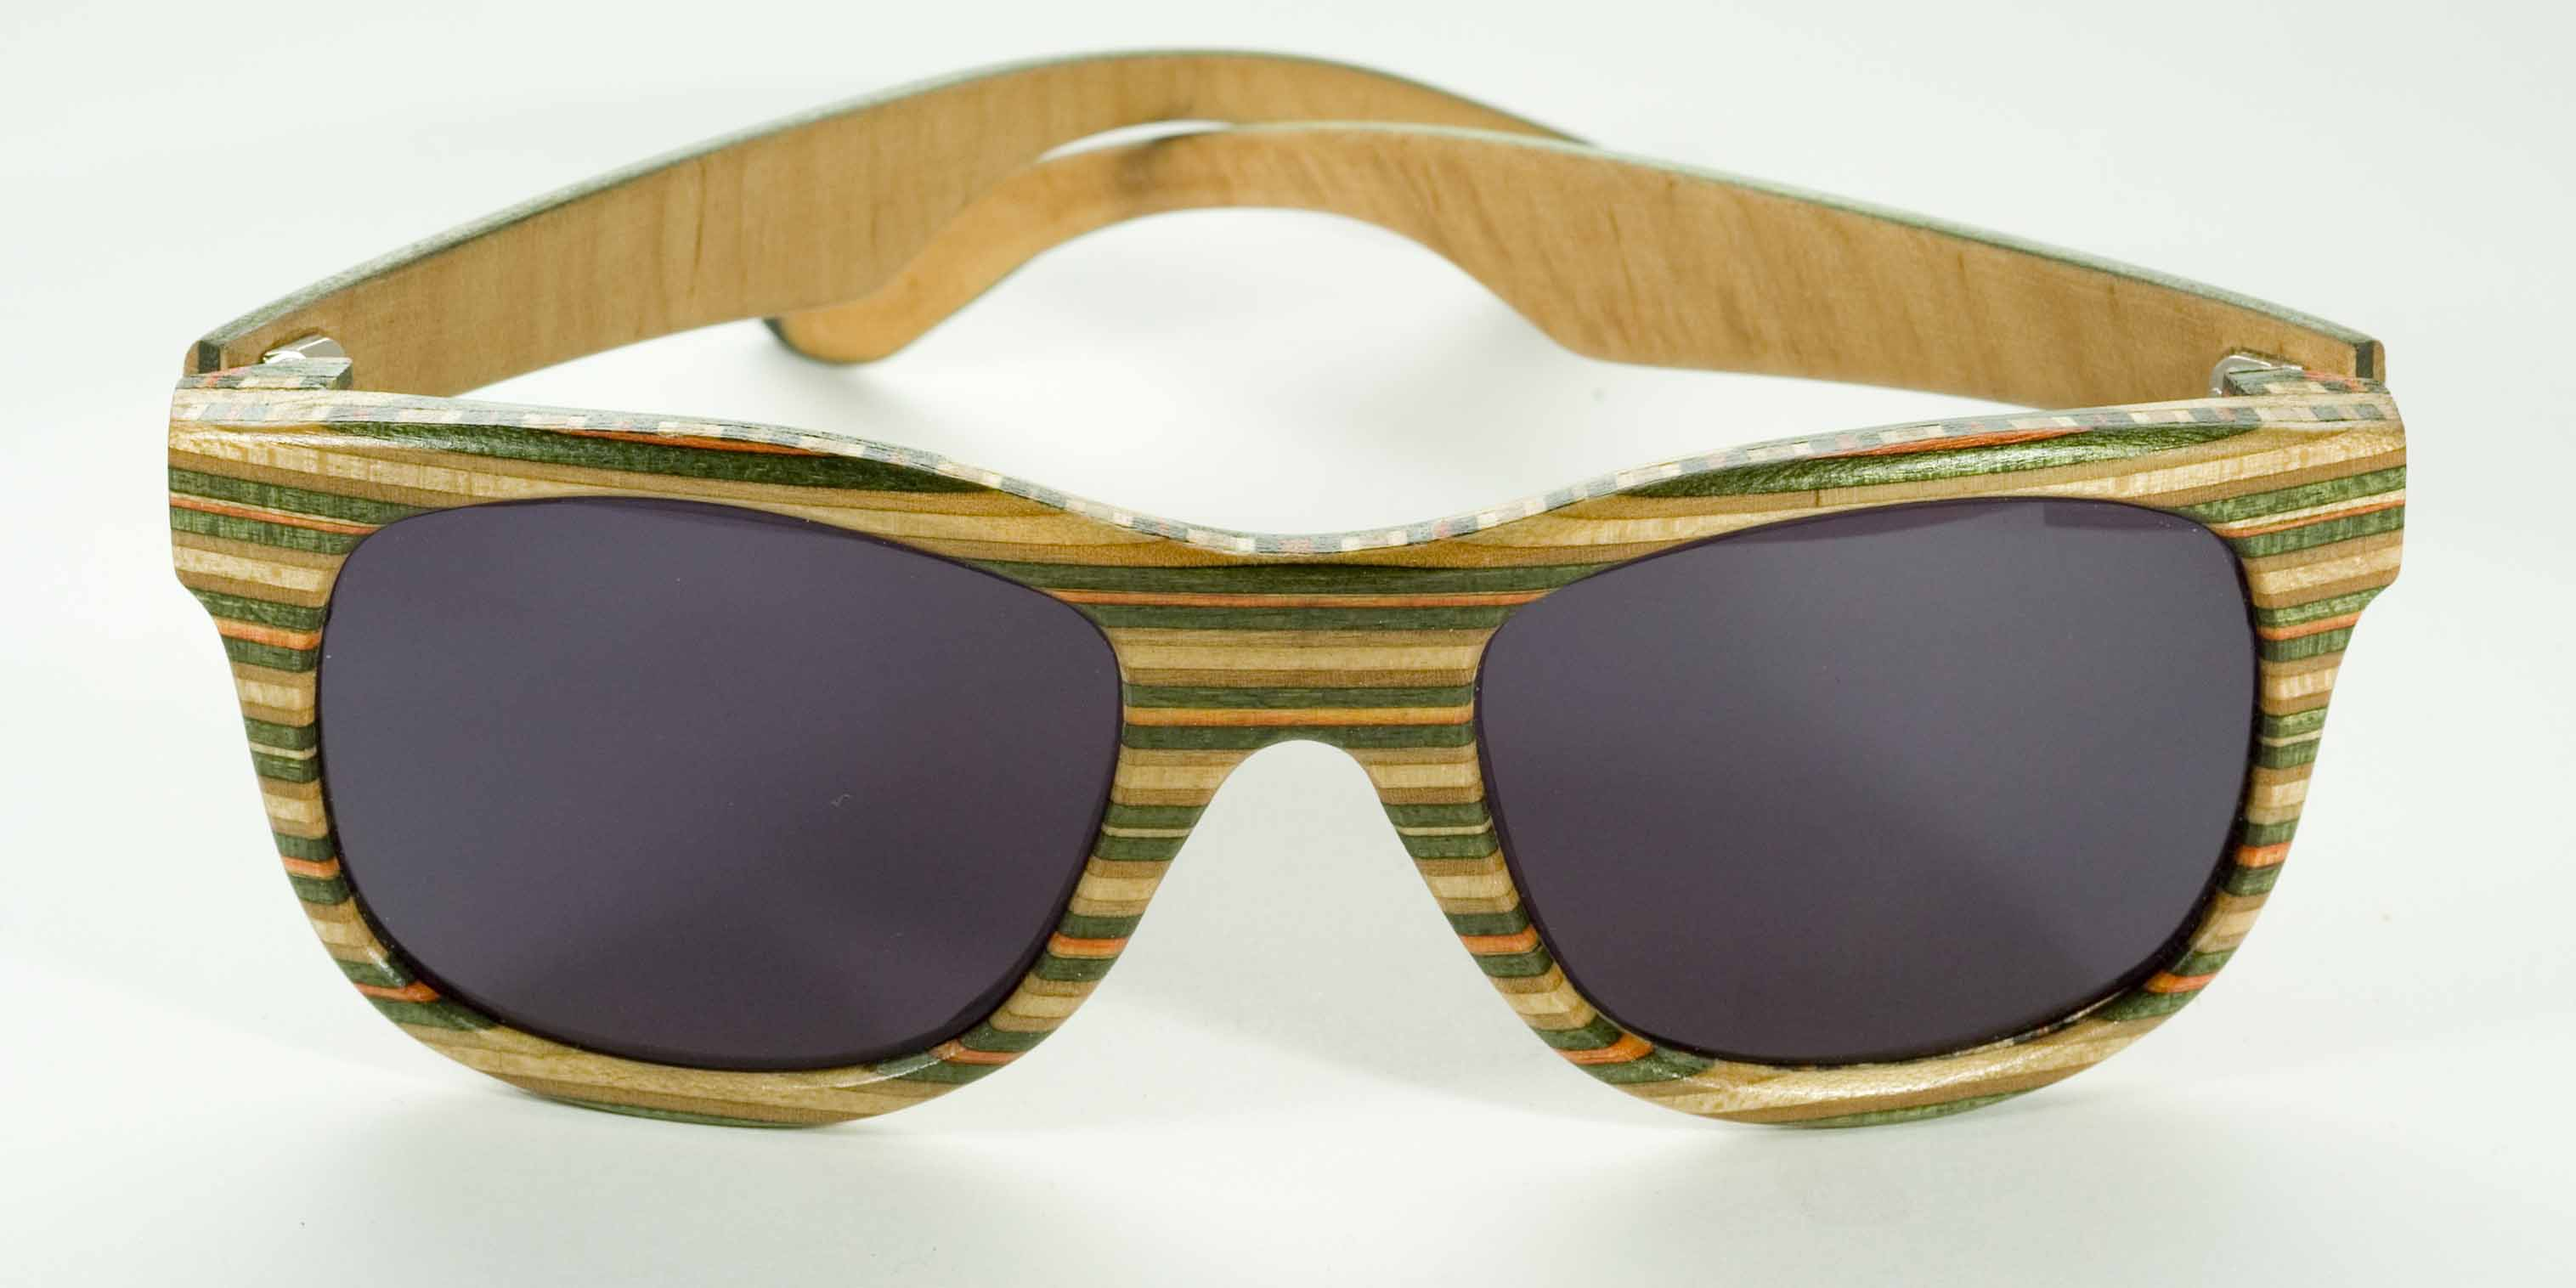 eef20ccd777 Wooden sunglasses from old skateboards